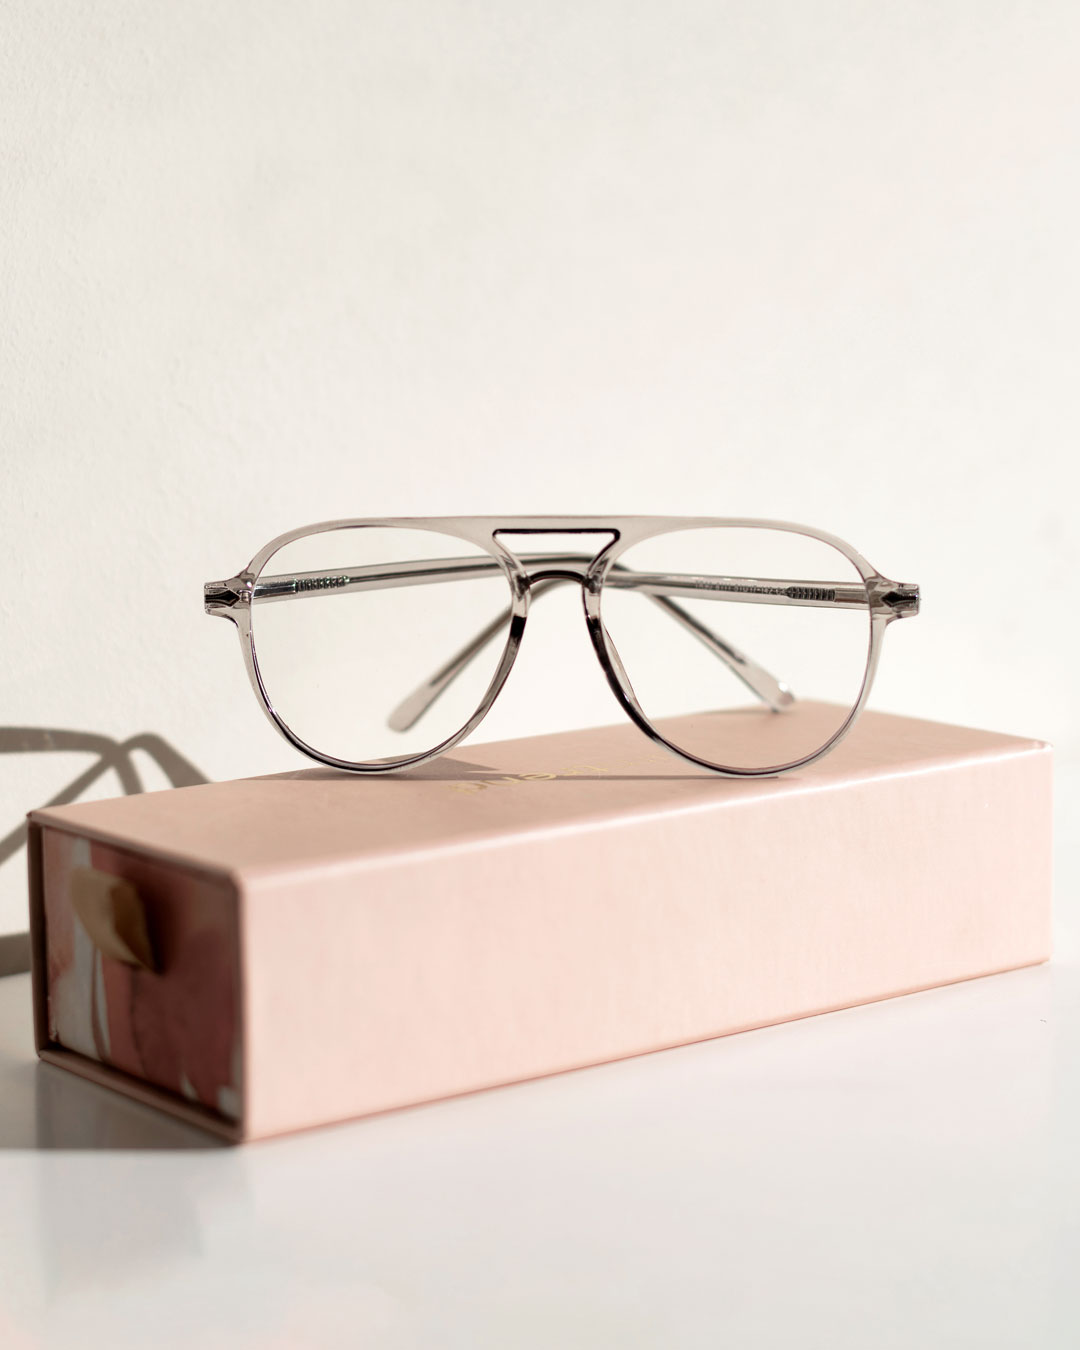 Aviator blue light glasses with a transparent frame rest on top of a pink iamtrend case.